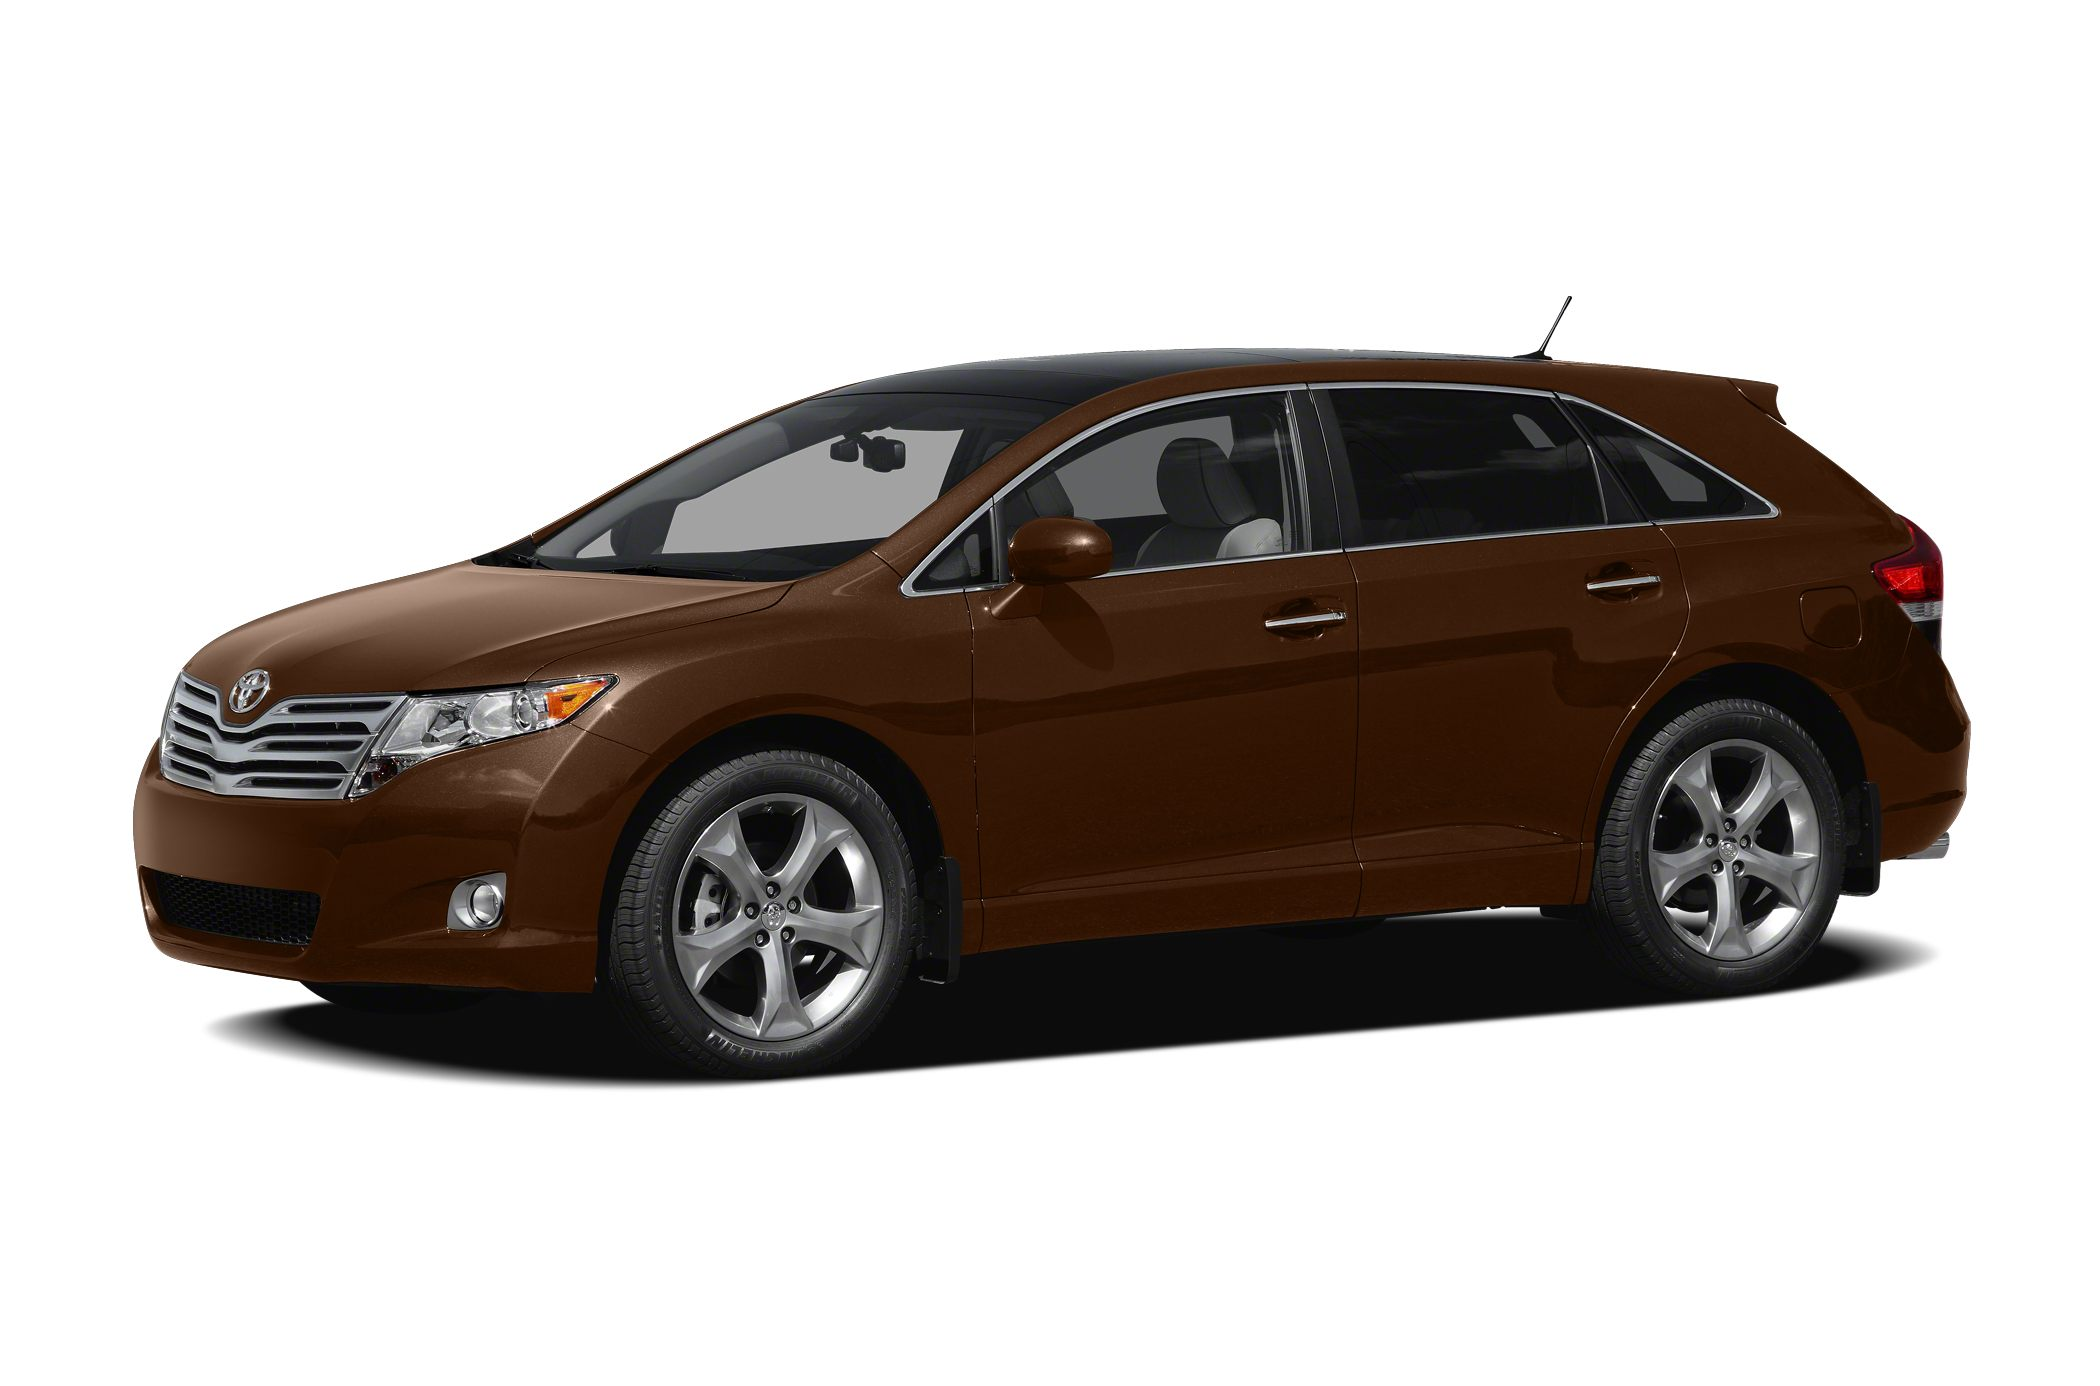 2010 Toyota Venza SUV for sale in Oneonta for $21,995 with 58,047 miles.